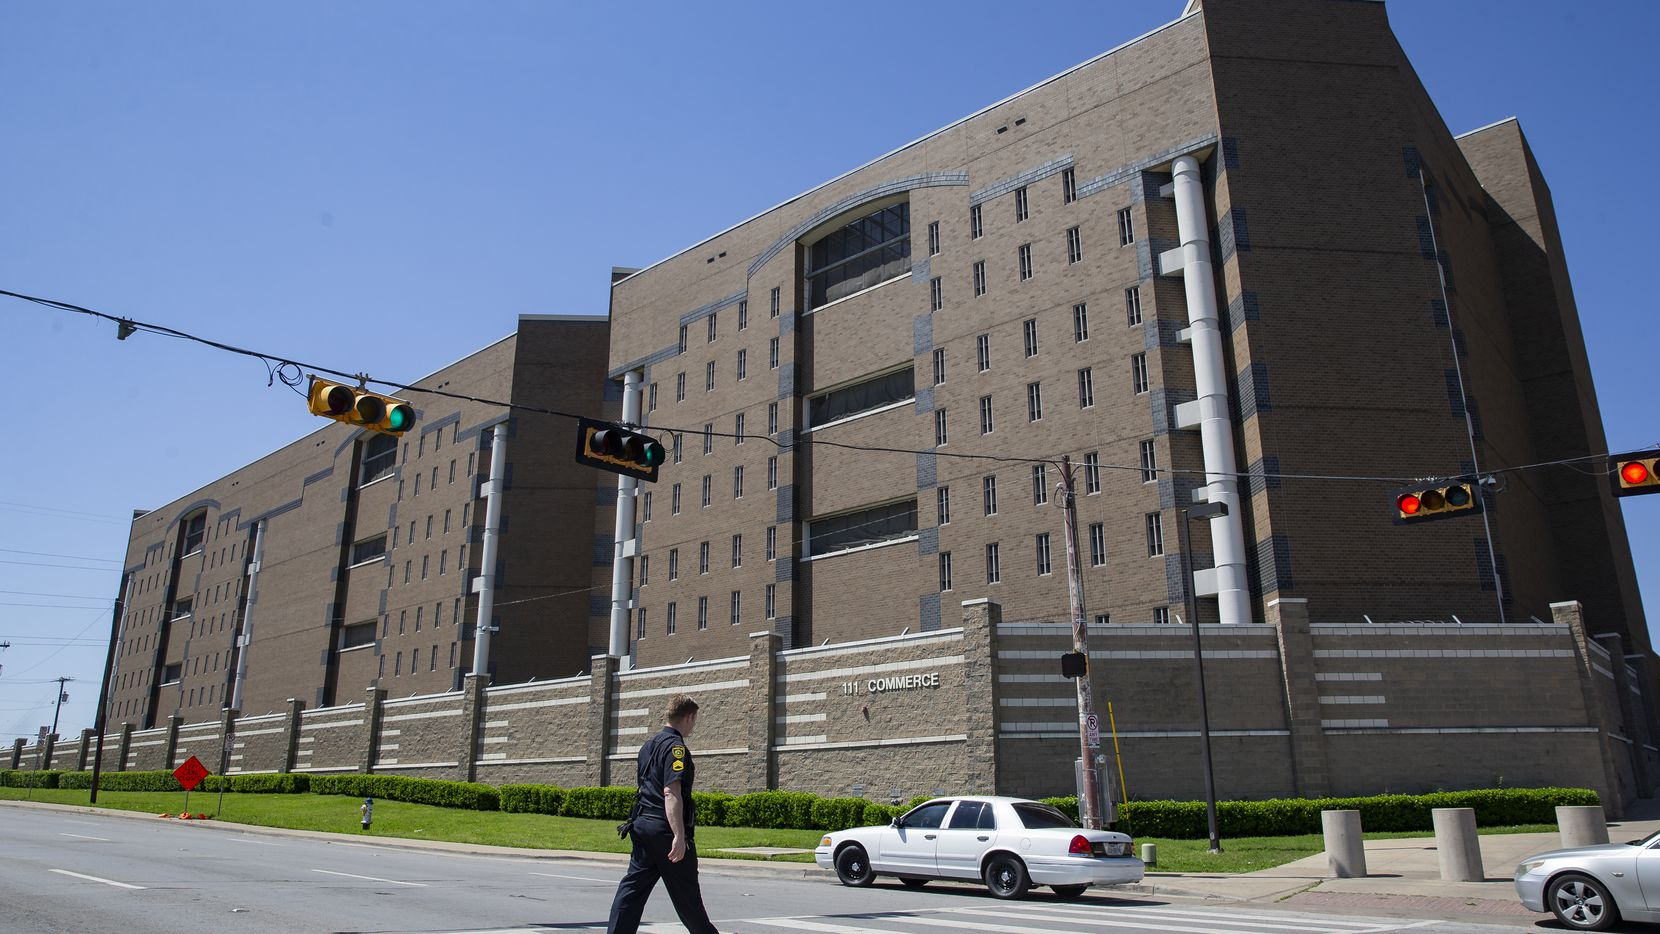 More than 300 inmates at the Dallas County jail have tested positive for the coronavirus.